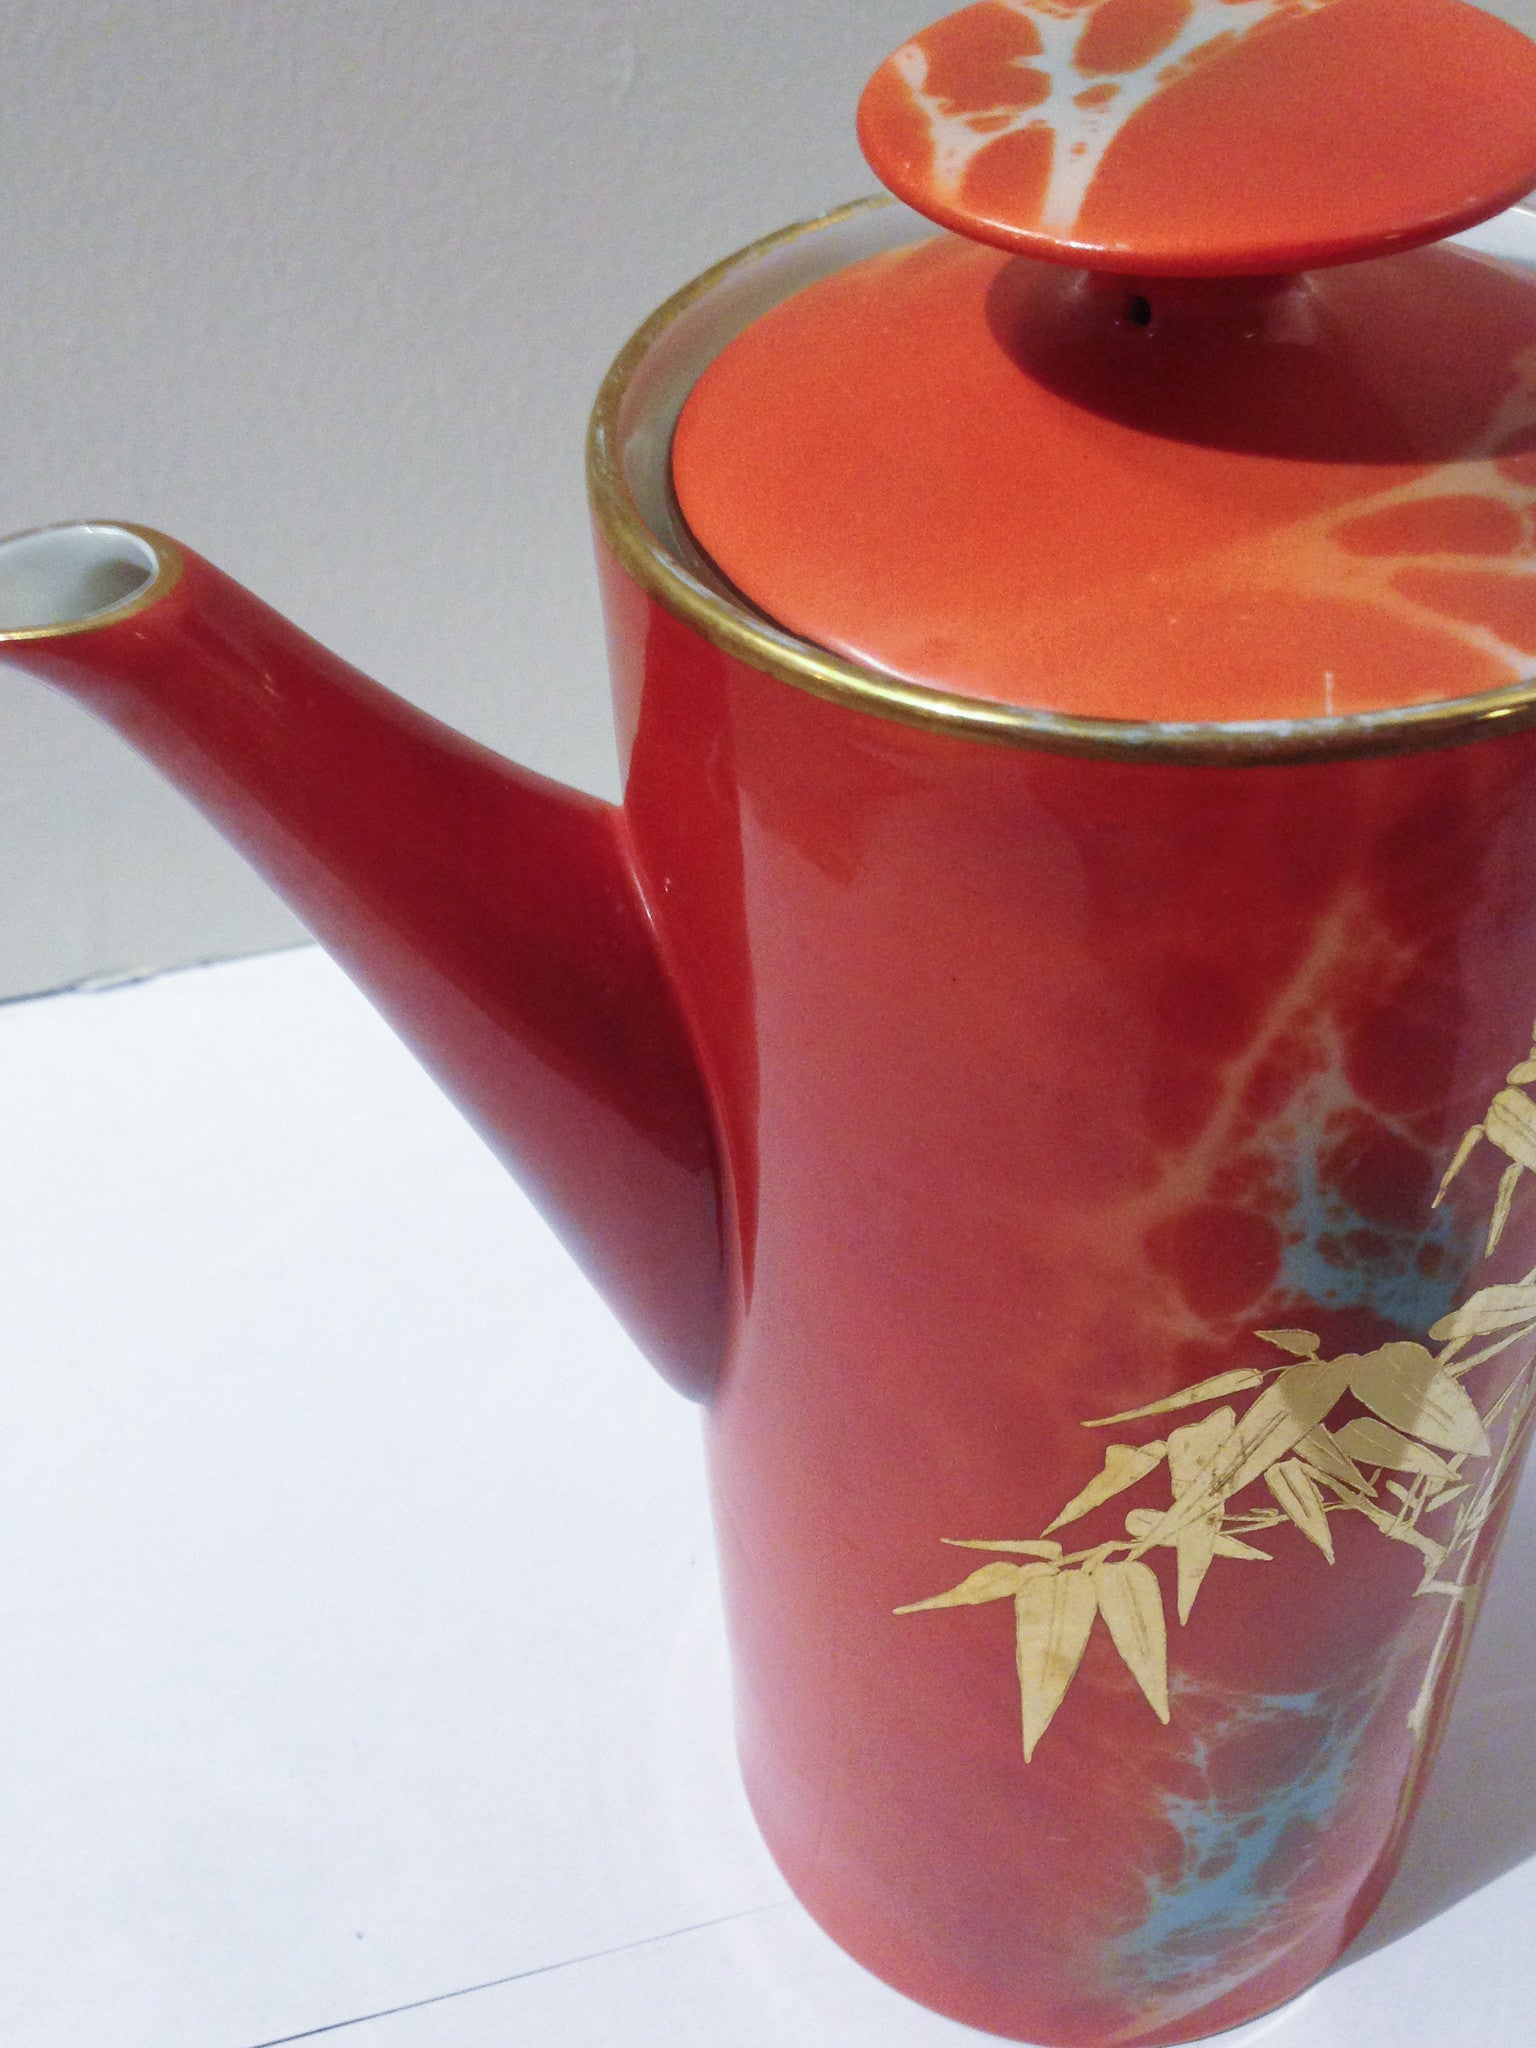 Vintage Asian Orange/Gold Teapot & Plate - Studio Lane at Reposed NY Vintage Home Decor